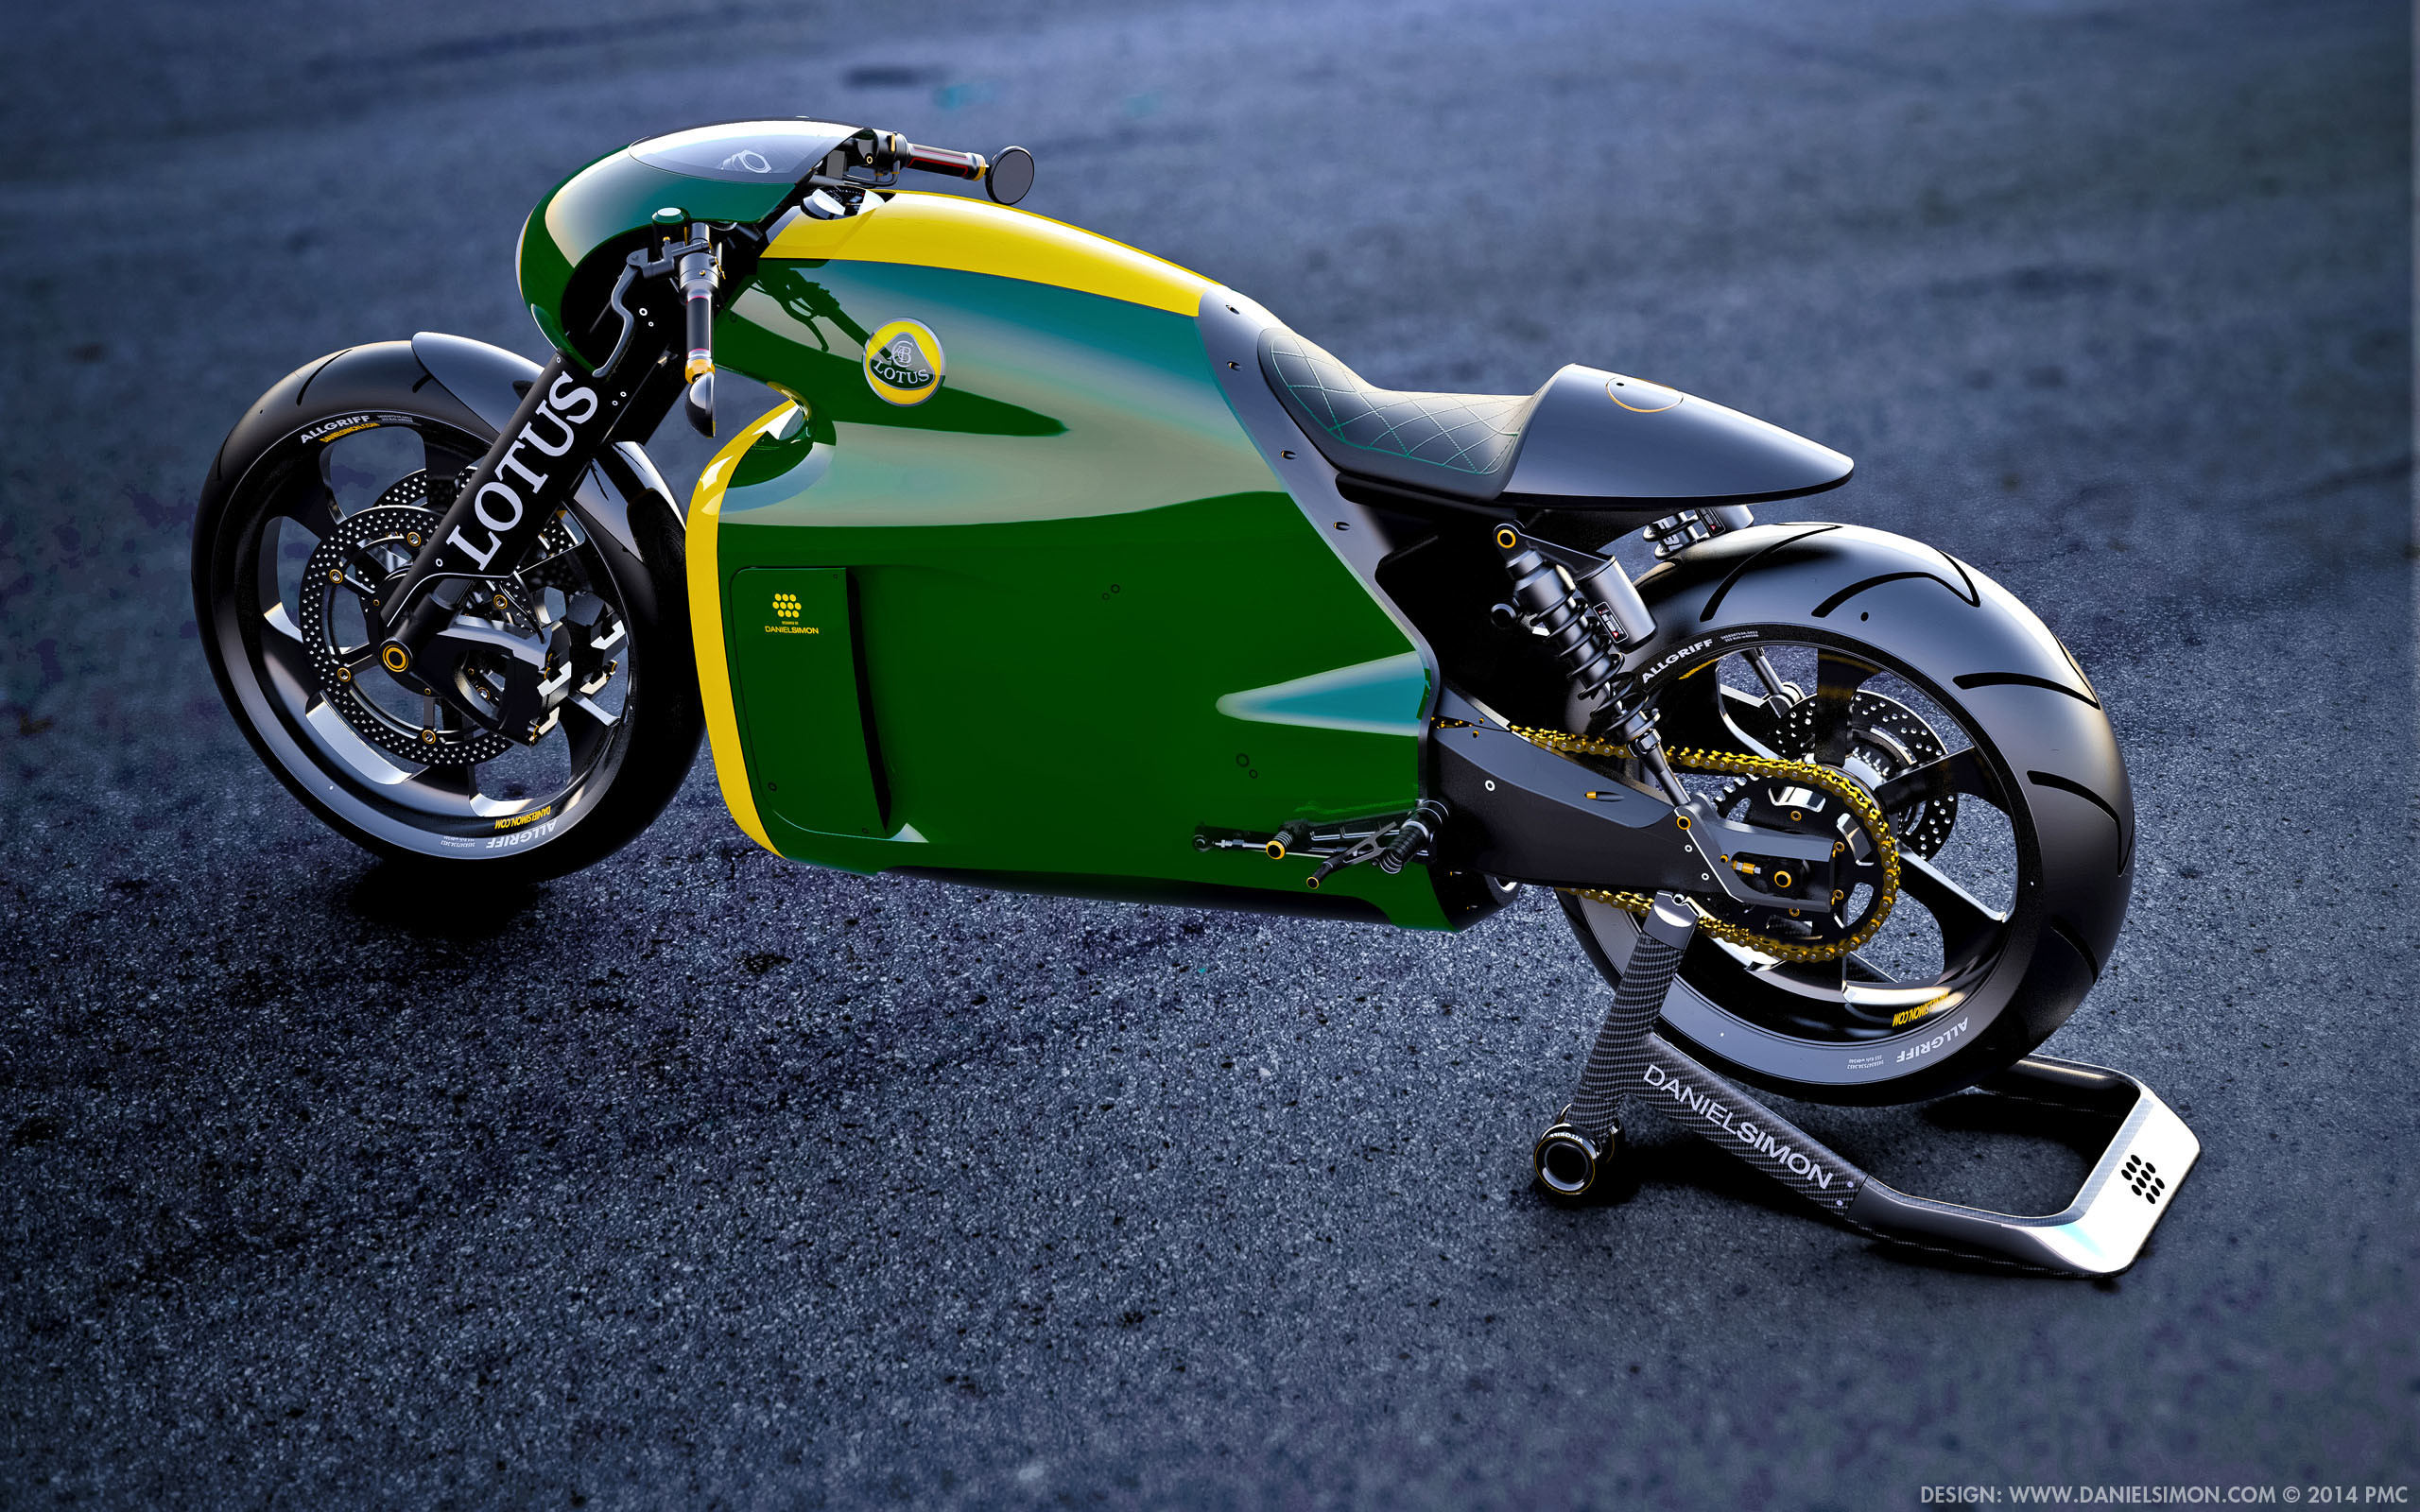 2560x1600 Wallpaper Lotus C 01 Motorcycle Design